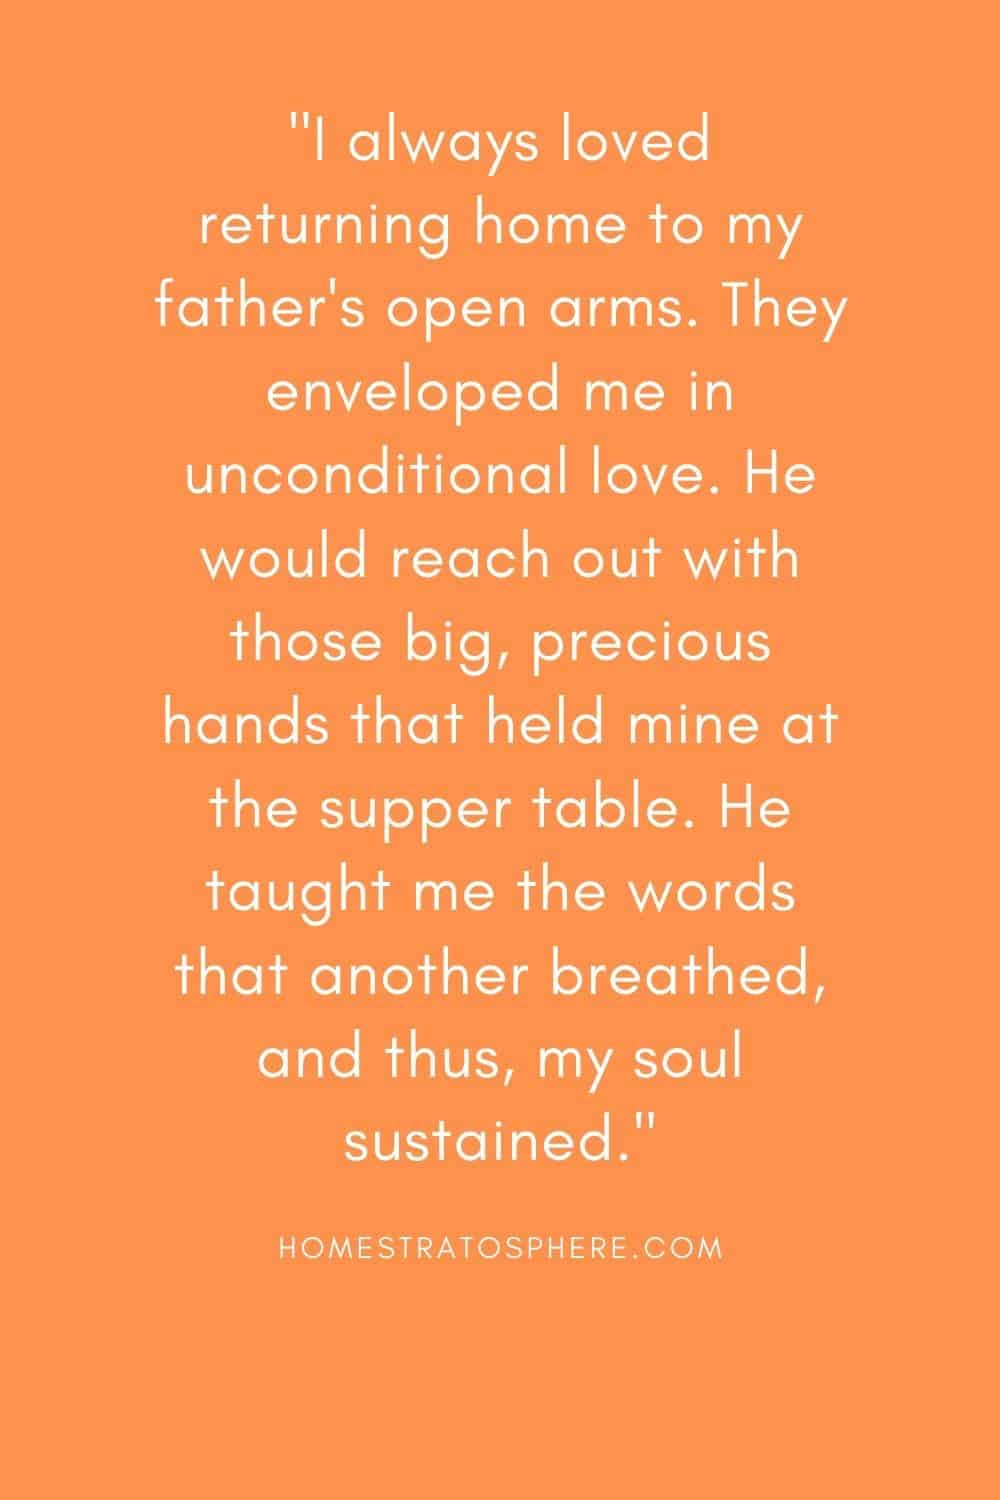 """""""I always loved returning home to my father's open arms. They enveloped me in unconditional love. He would reach out with those big, precious hands that held mine at the supper table. He taught me the words that another breathed, and thus, my soul sustained."""""""